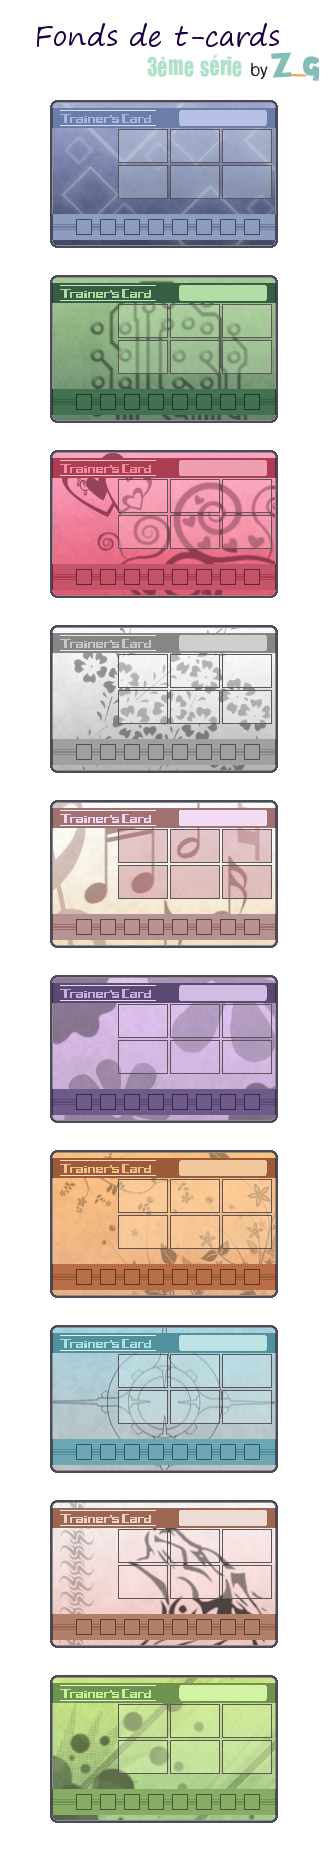 Trainer card backgrounds 3 by pwassonne